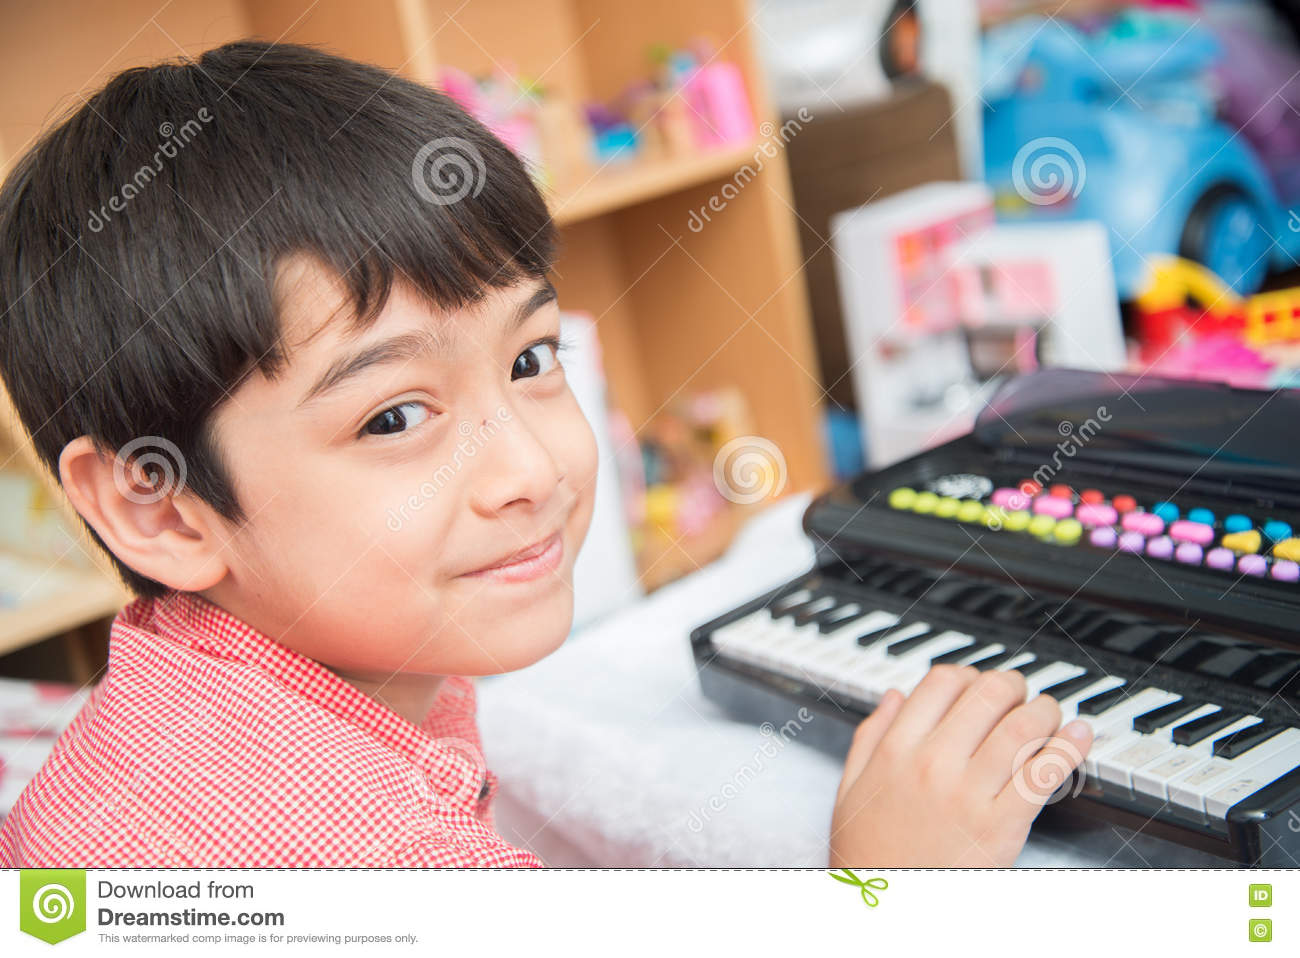 Little hand boy playing small keyboard practice indoor